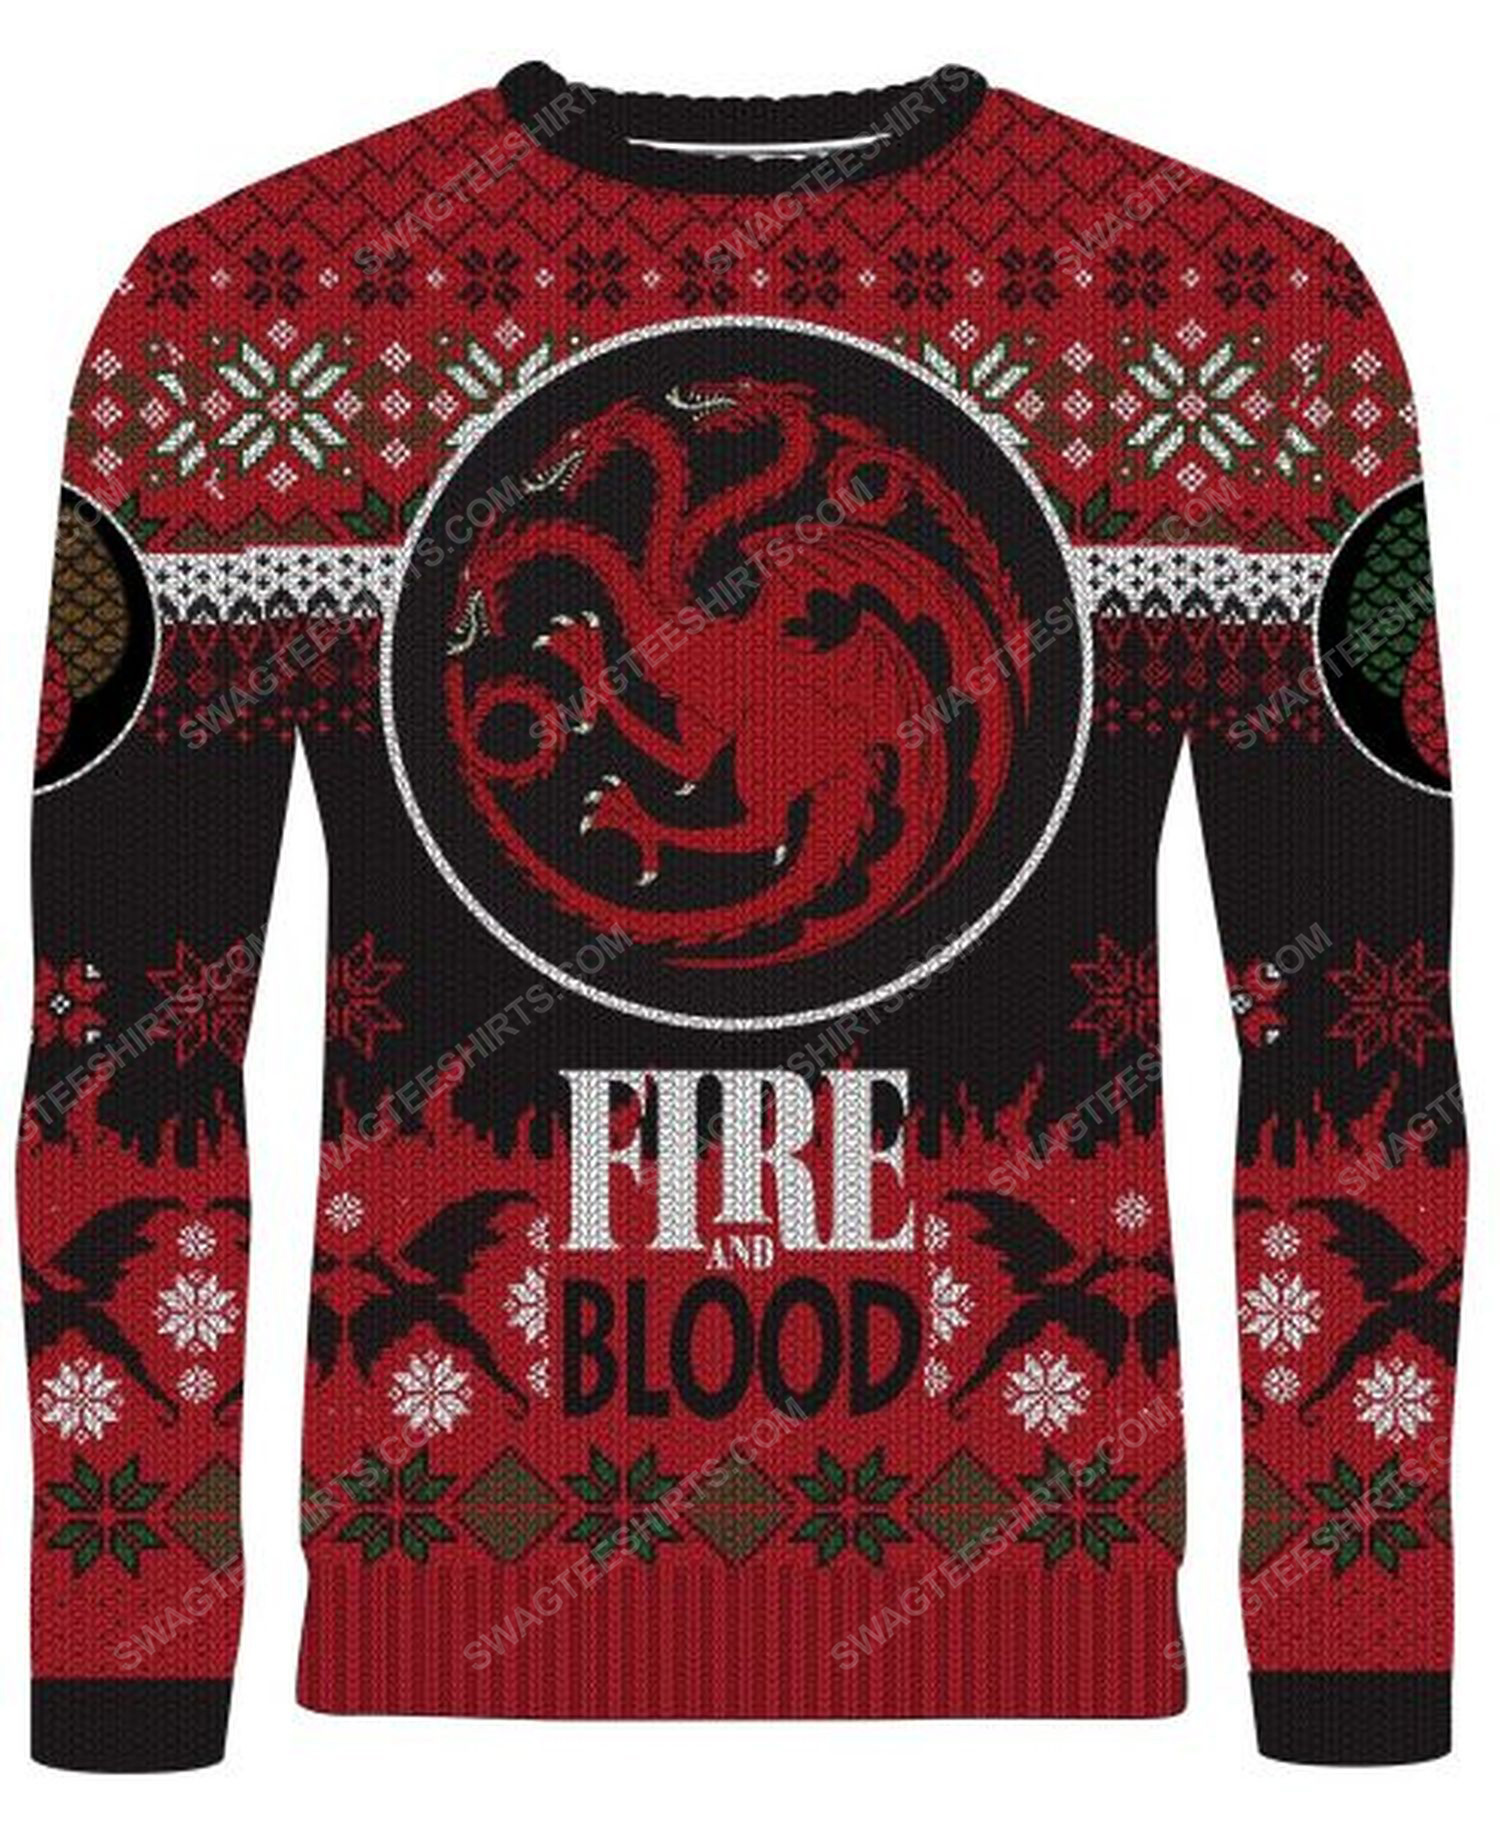 Game of thrones fire and blood targaryen full print ugly christmas sweater 1